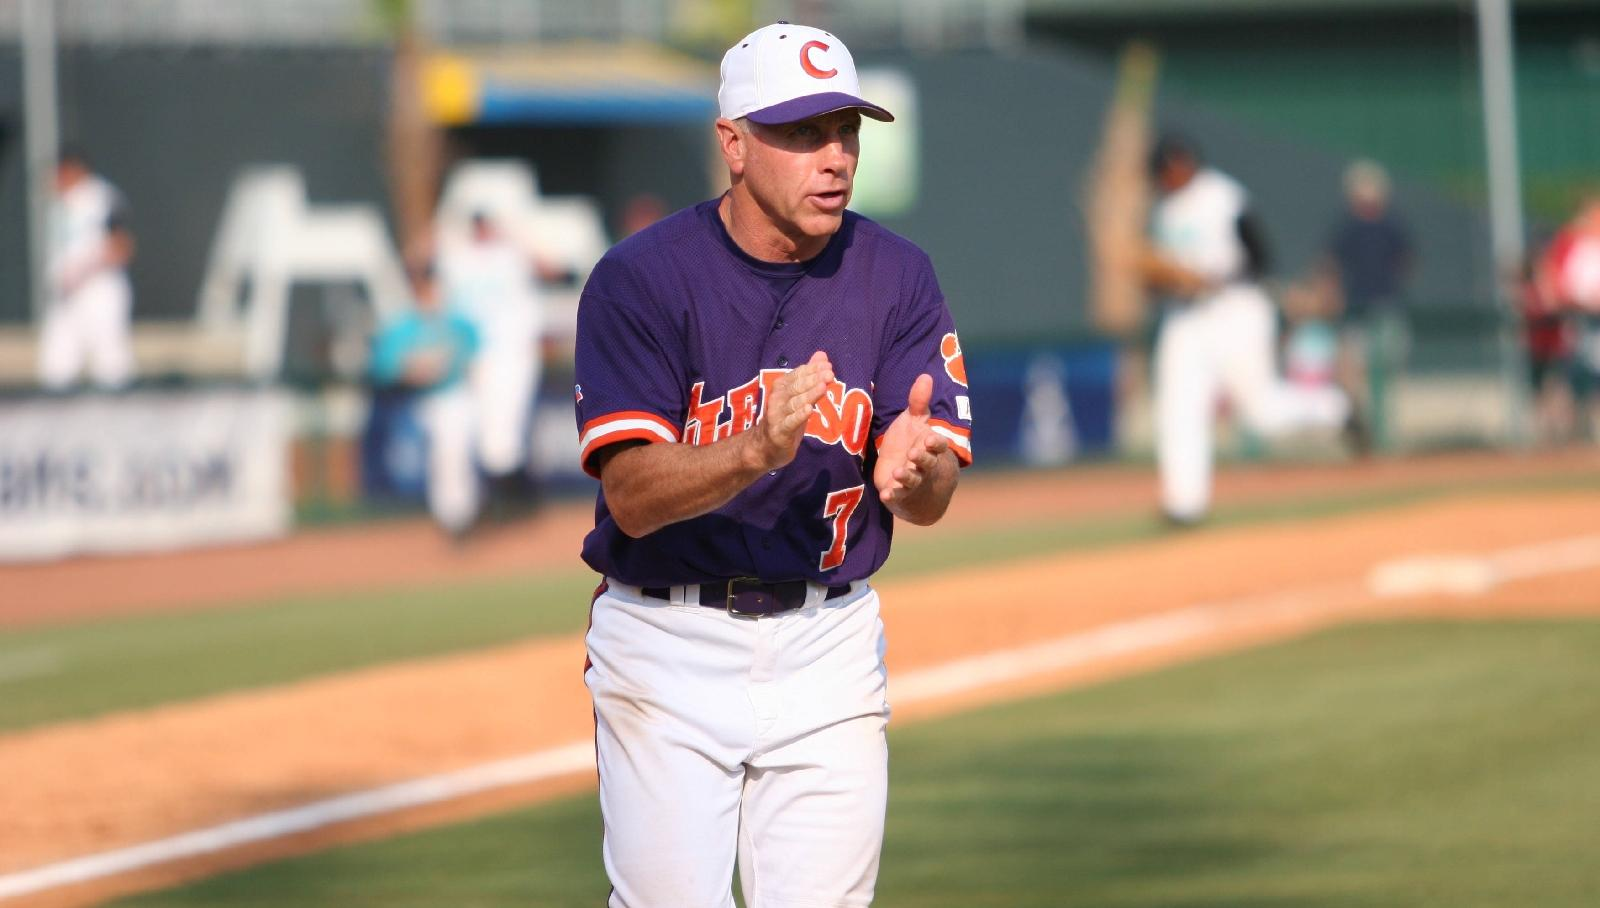 Orange Rallies for 6-5 Walkoff Win Over Purple on Sunday to Conclude Fall Baseball Season